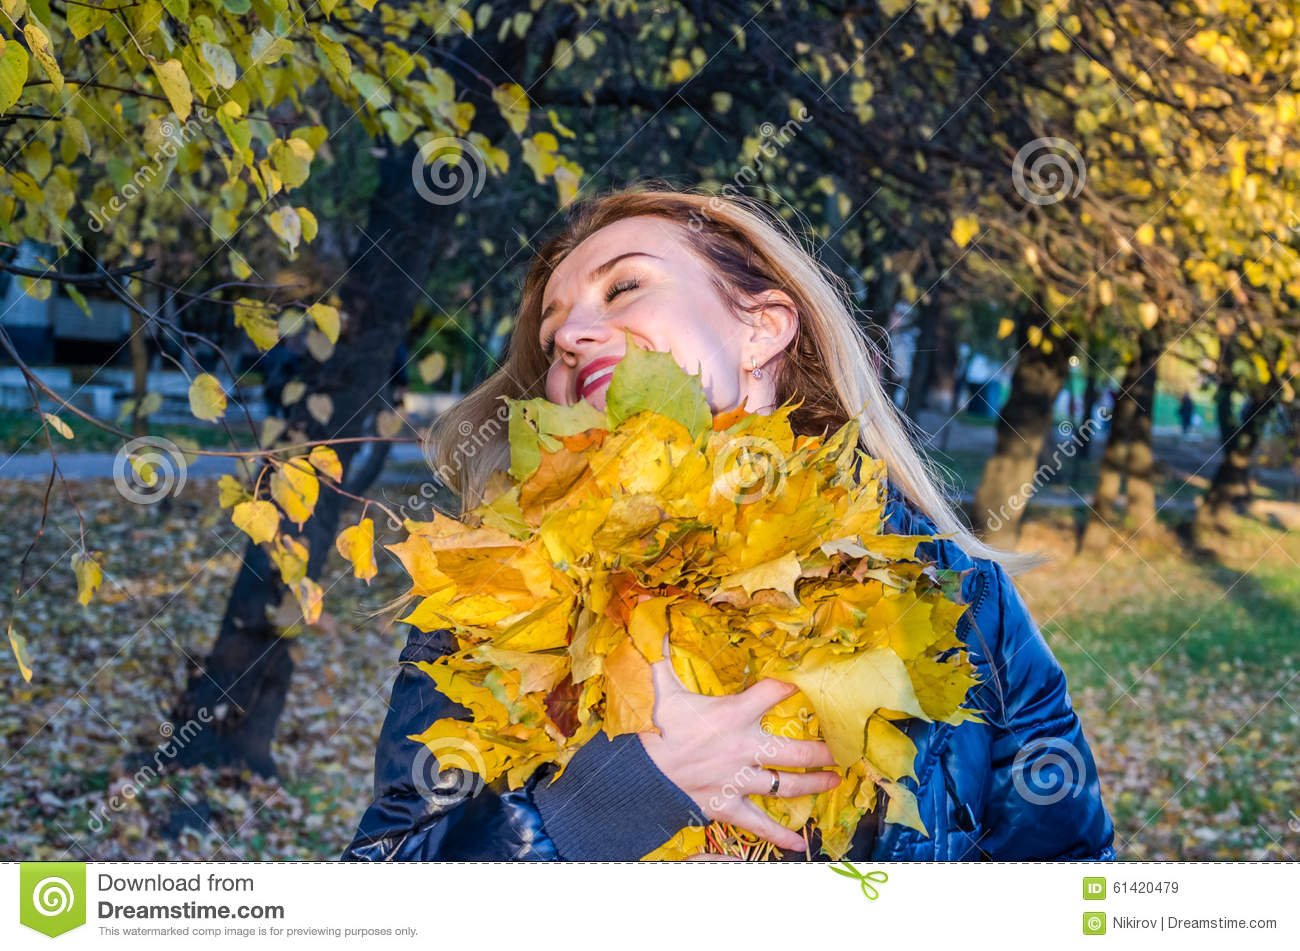 Young cheerful cute girl woman playing with fallen autumn yellow leaves in the park near the tree, laughing and smiling